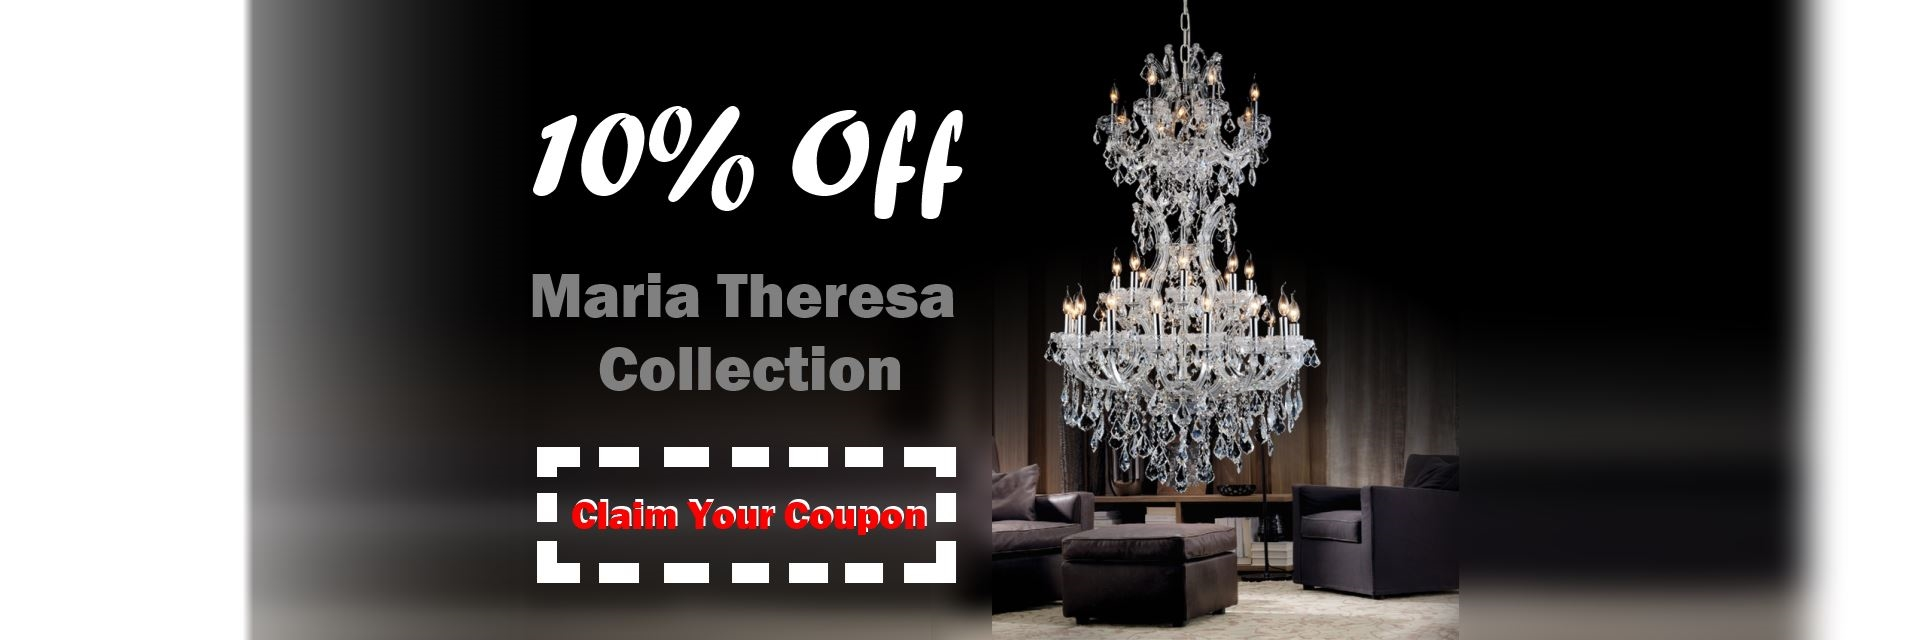 10% Off Maria Theresa Collection